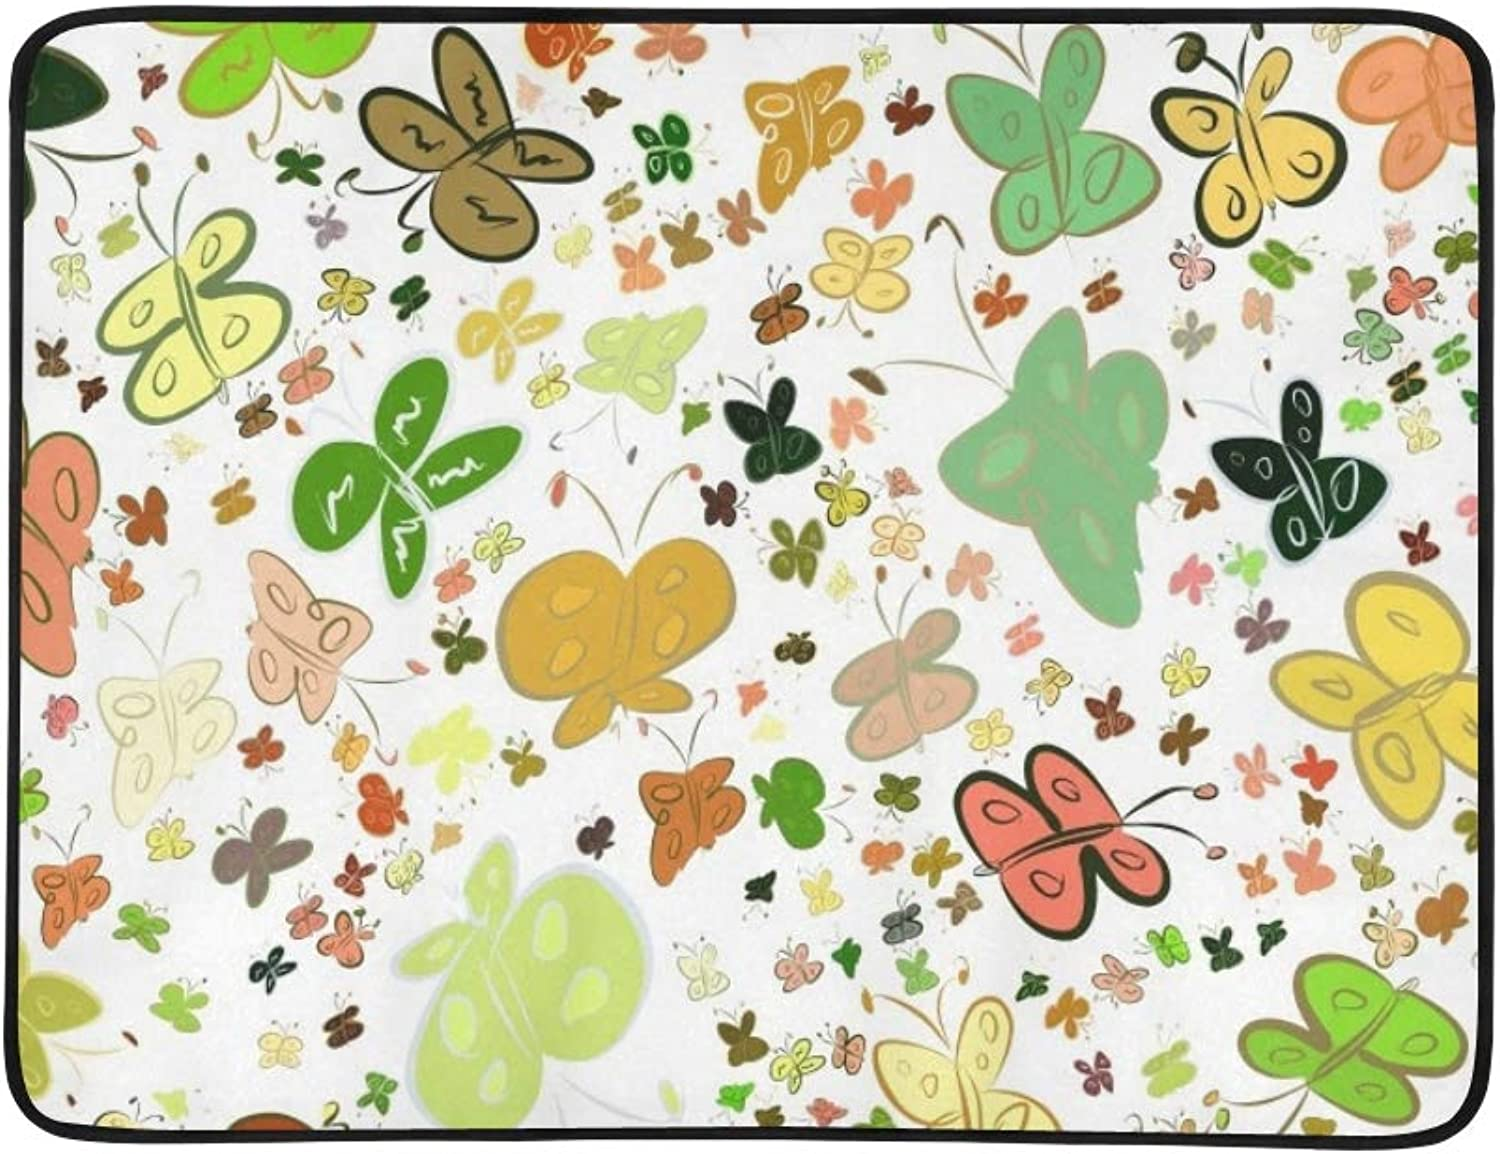 Butterfly s Abstract Hand Drawn Portable and Foldable Blanket Mat 60x78 Inch Handy Mat for Camping Picnic Beach Indoor Outdoor Travel